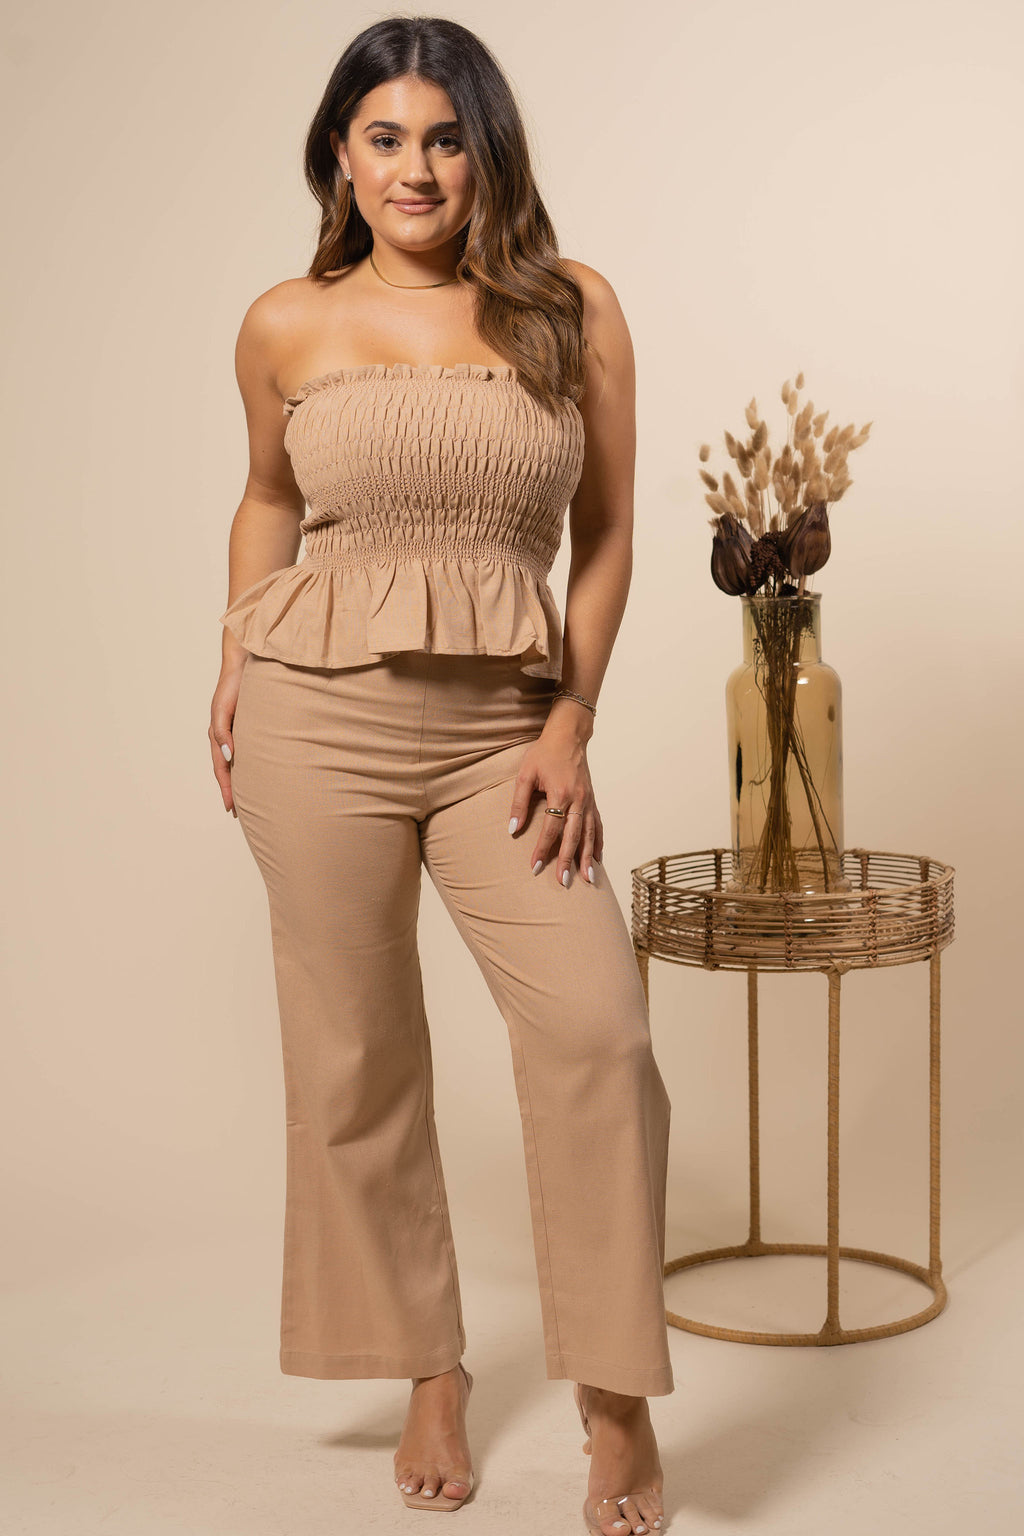 Paradise Nude Top + Pant Set